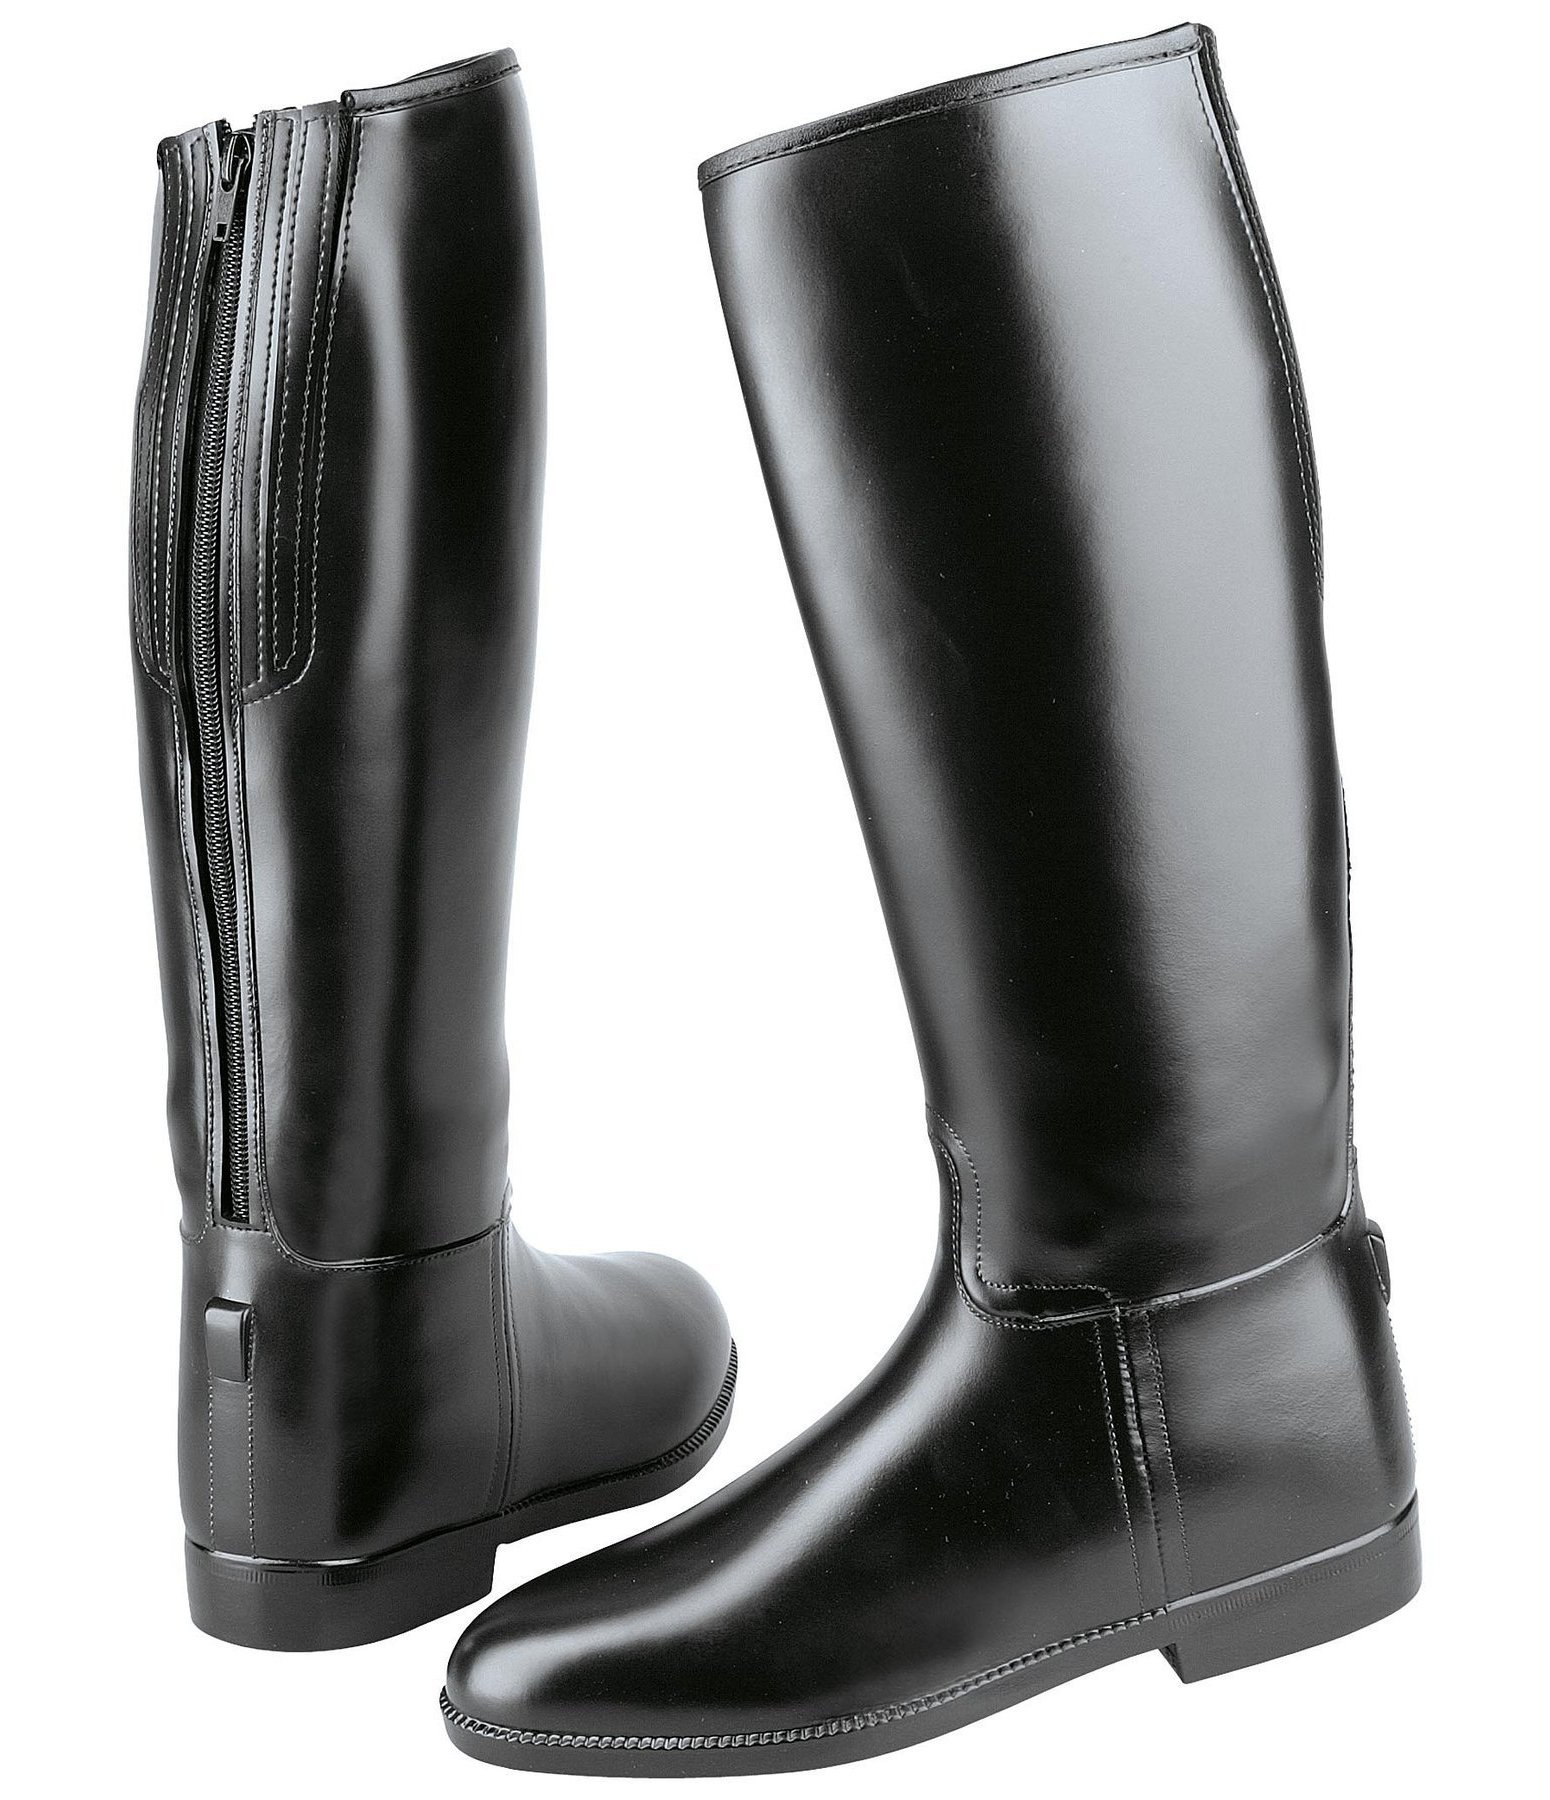 Reitstiefel Flexible